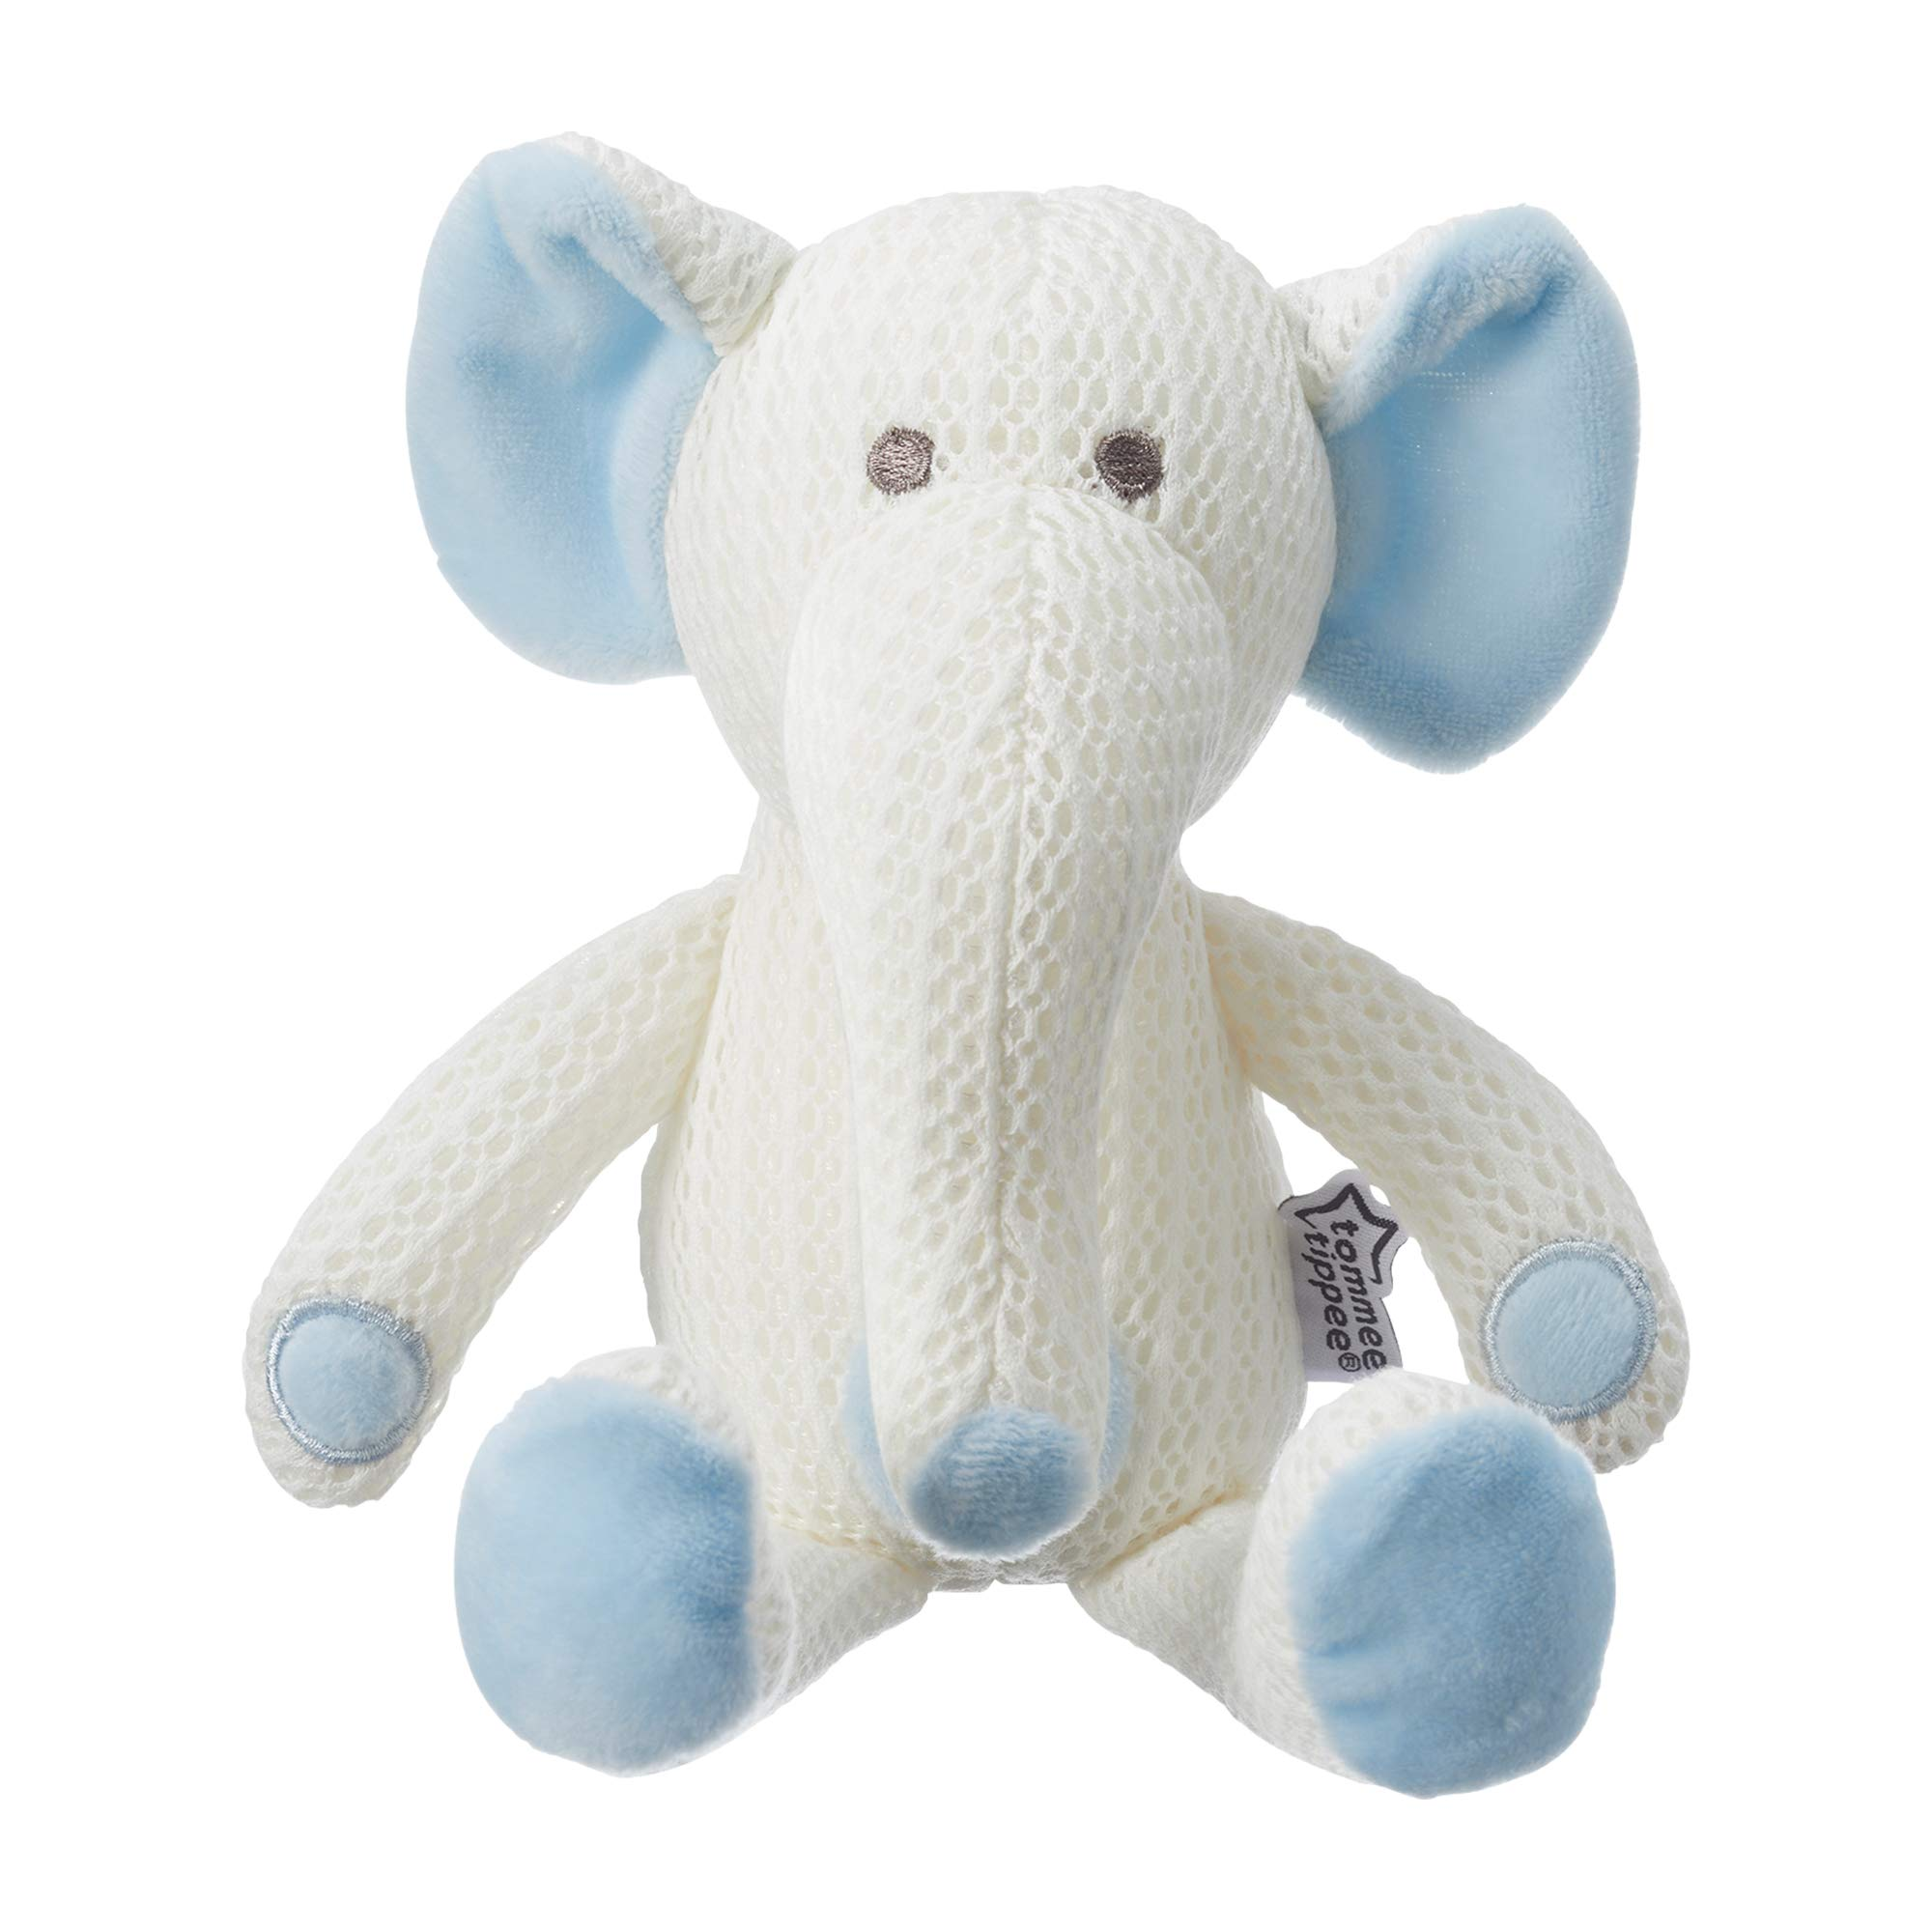 Tommee Tippee Hypoallergenic Stuffed Animal Breathable Toy, Machine Washable, Eddy the Elephant, 0+ months